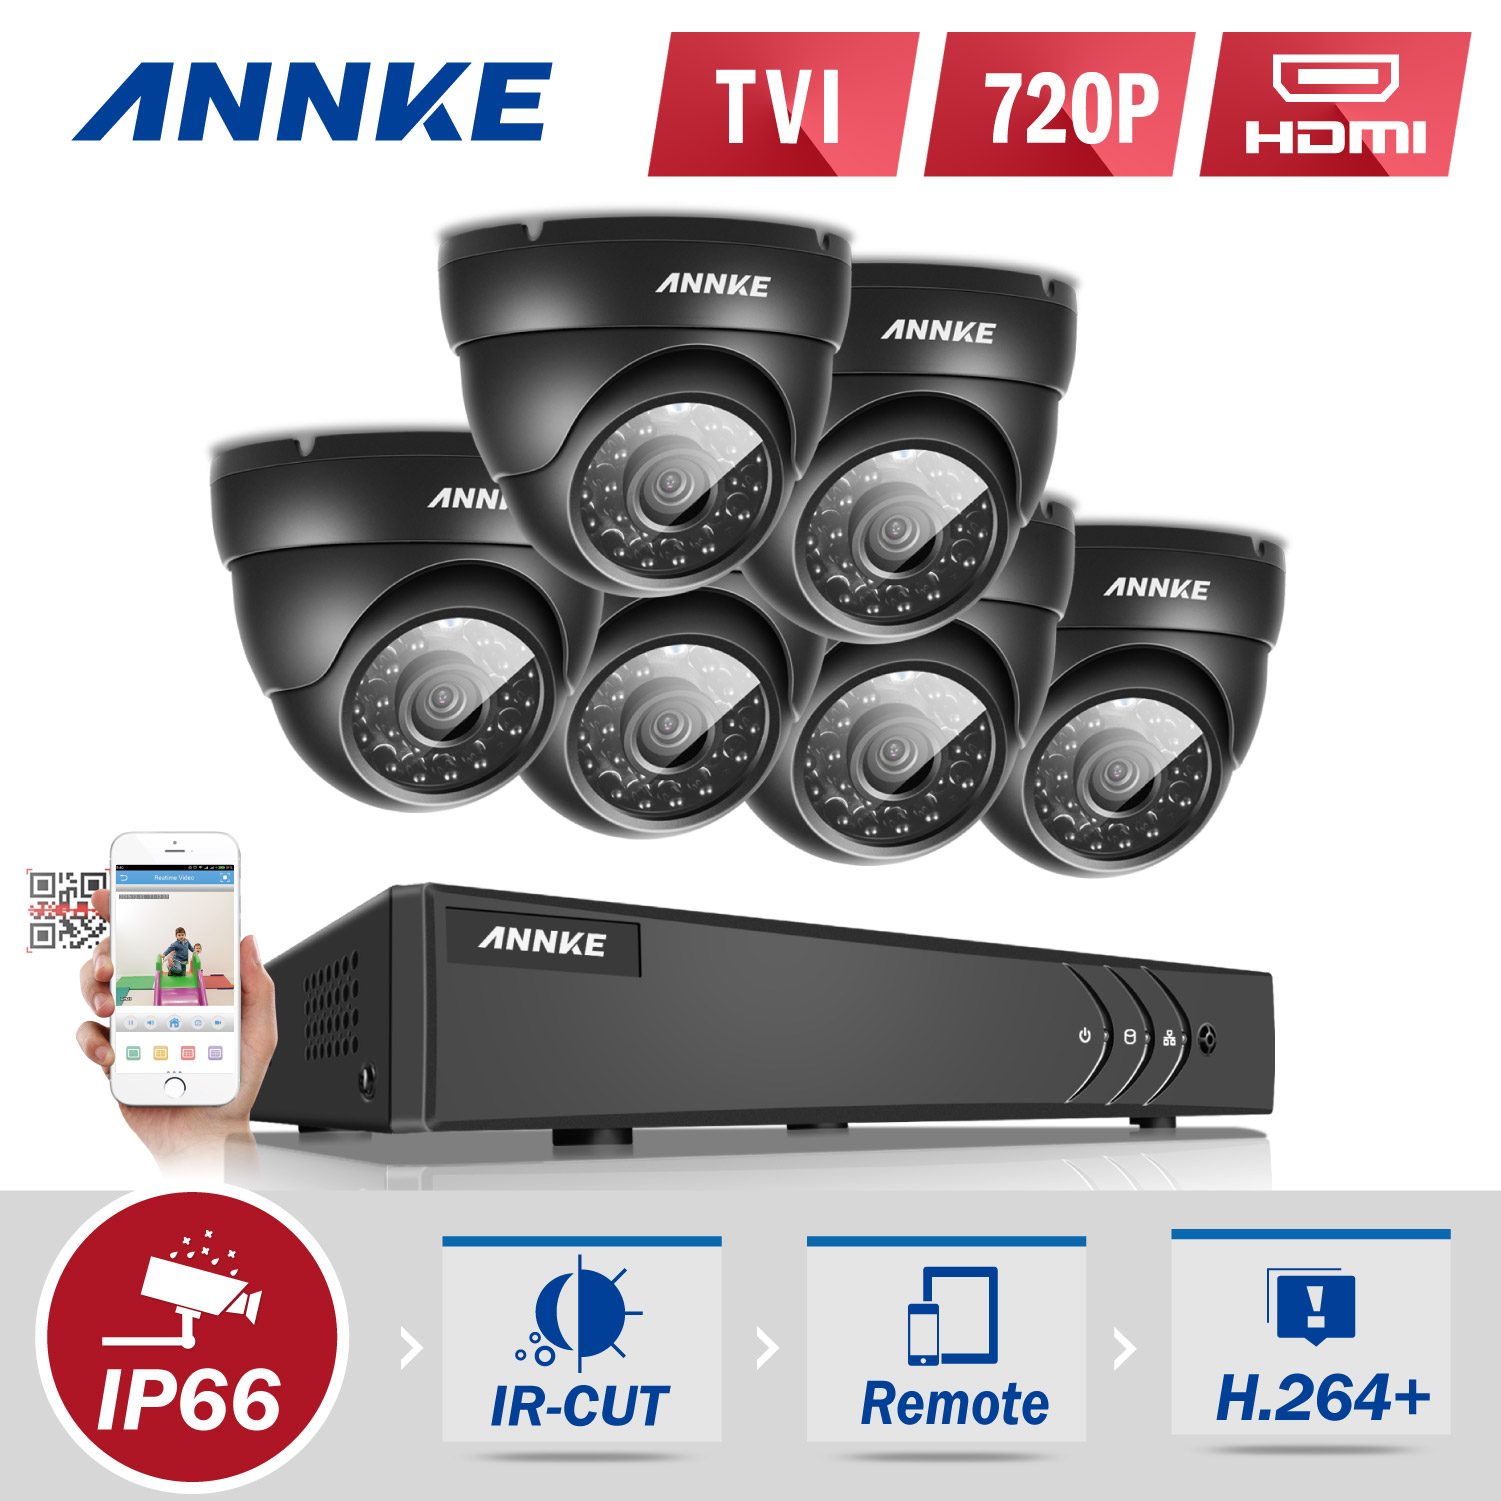 Annke 8 Channel Hd Tvi 1080p Lite Video Security System Dvr And 6 Weatherproof Indoor Outdoor Cameras Ir Cut Night Vision 0 No Hdd 1 1tb Hdd Walmart Com Walmart Com